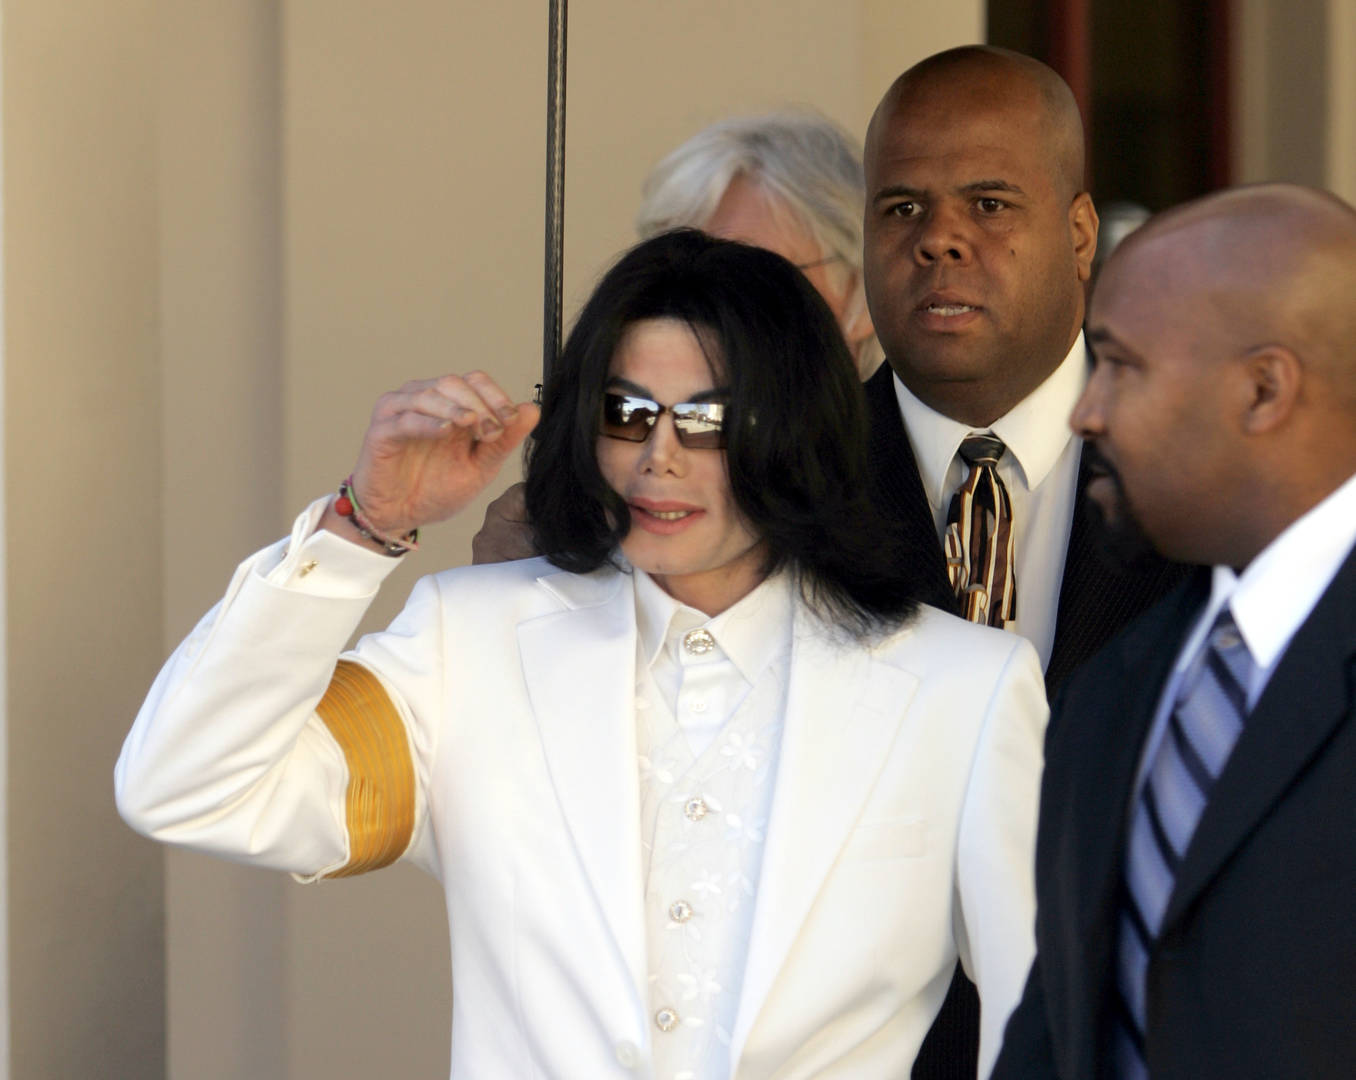 Michael Jackson's Former Bodyguard Lists Why Molestation Claims Are False